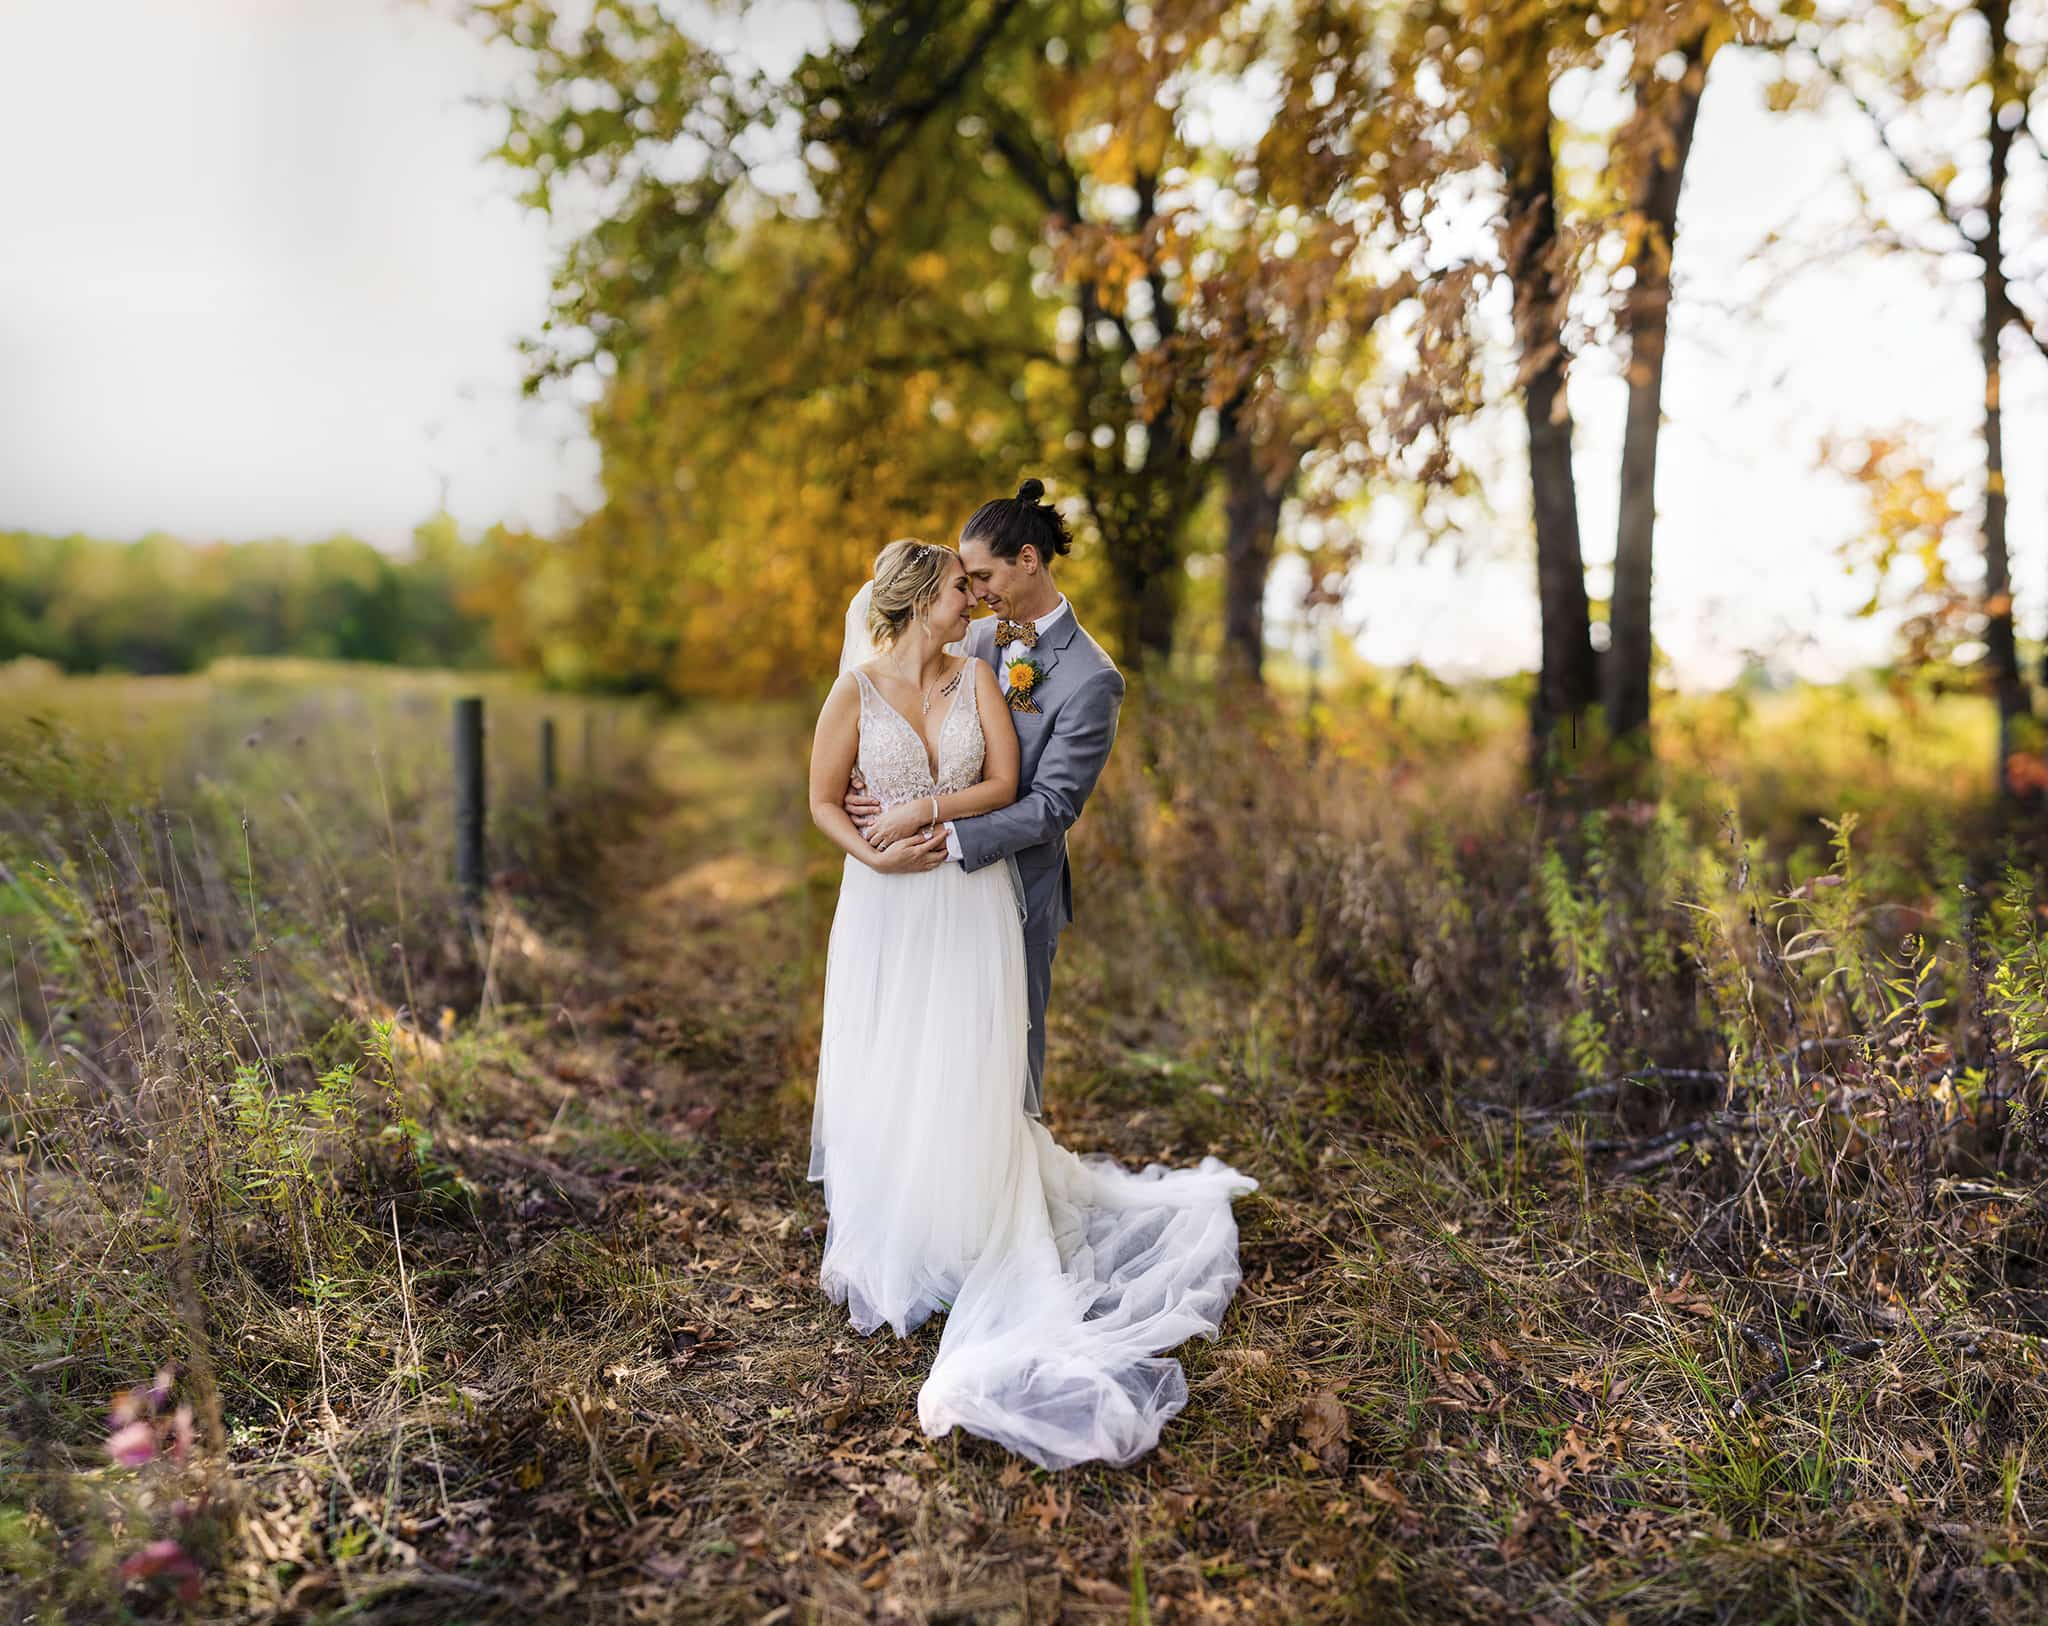 Bride and groom embrace outdoors during fall wedding